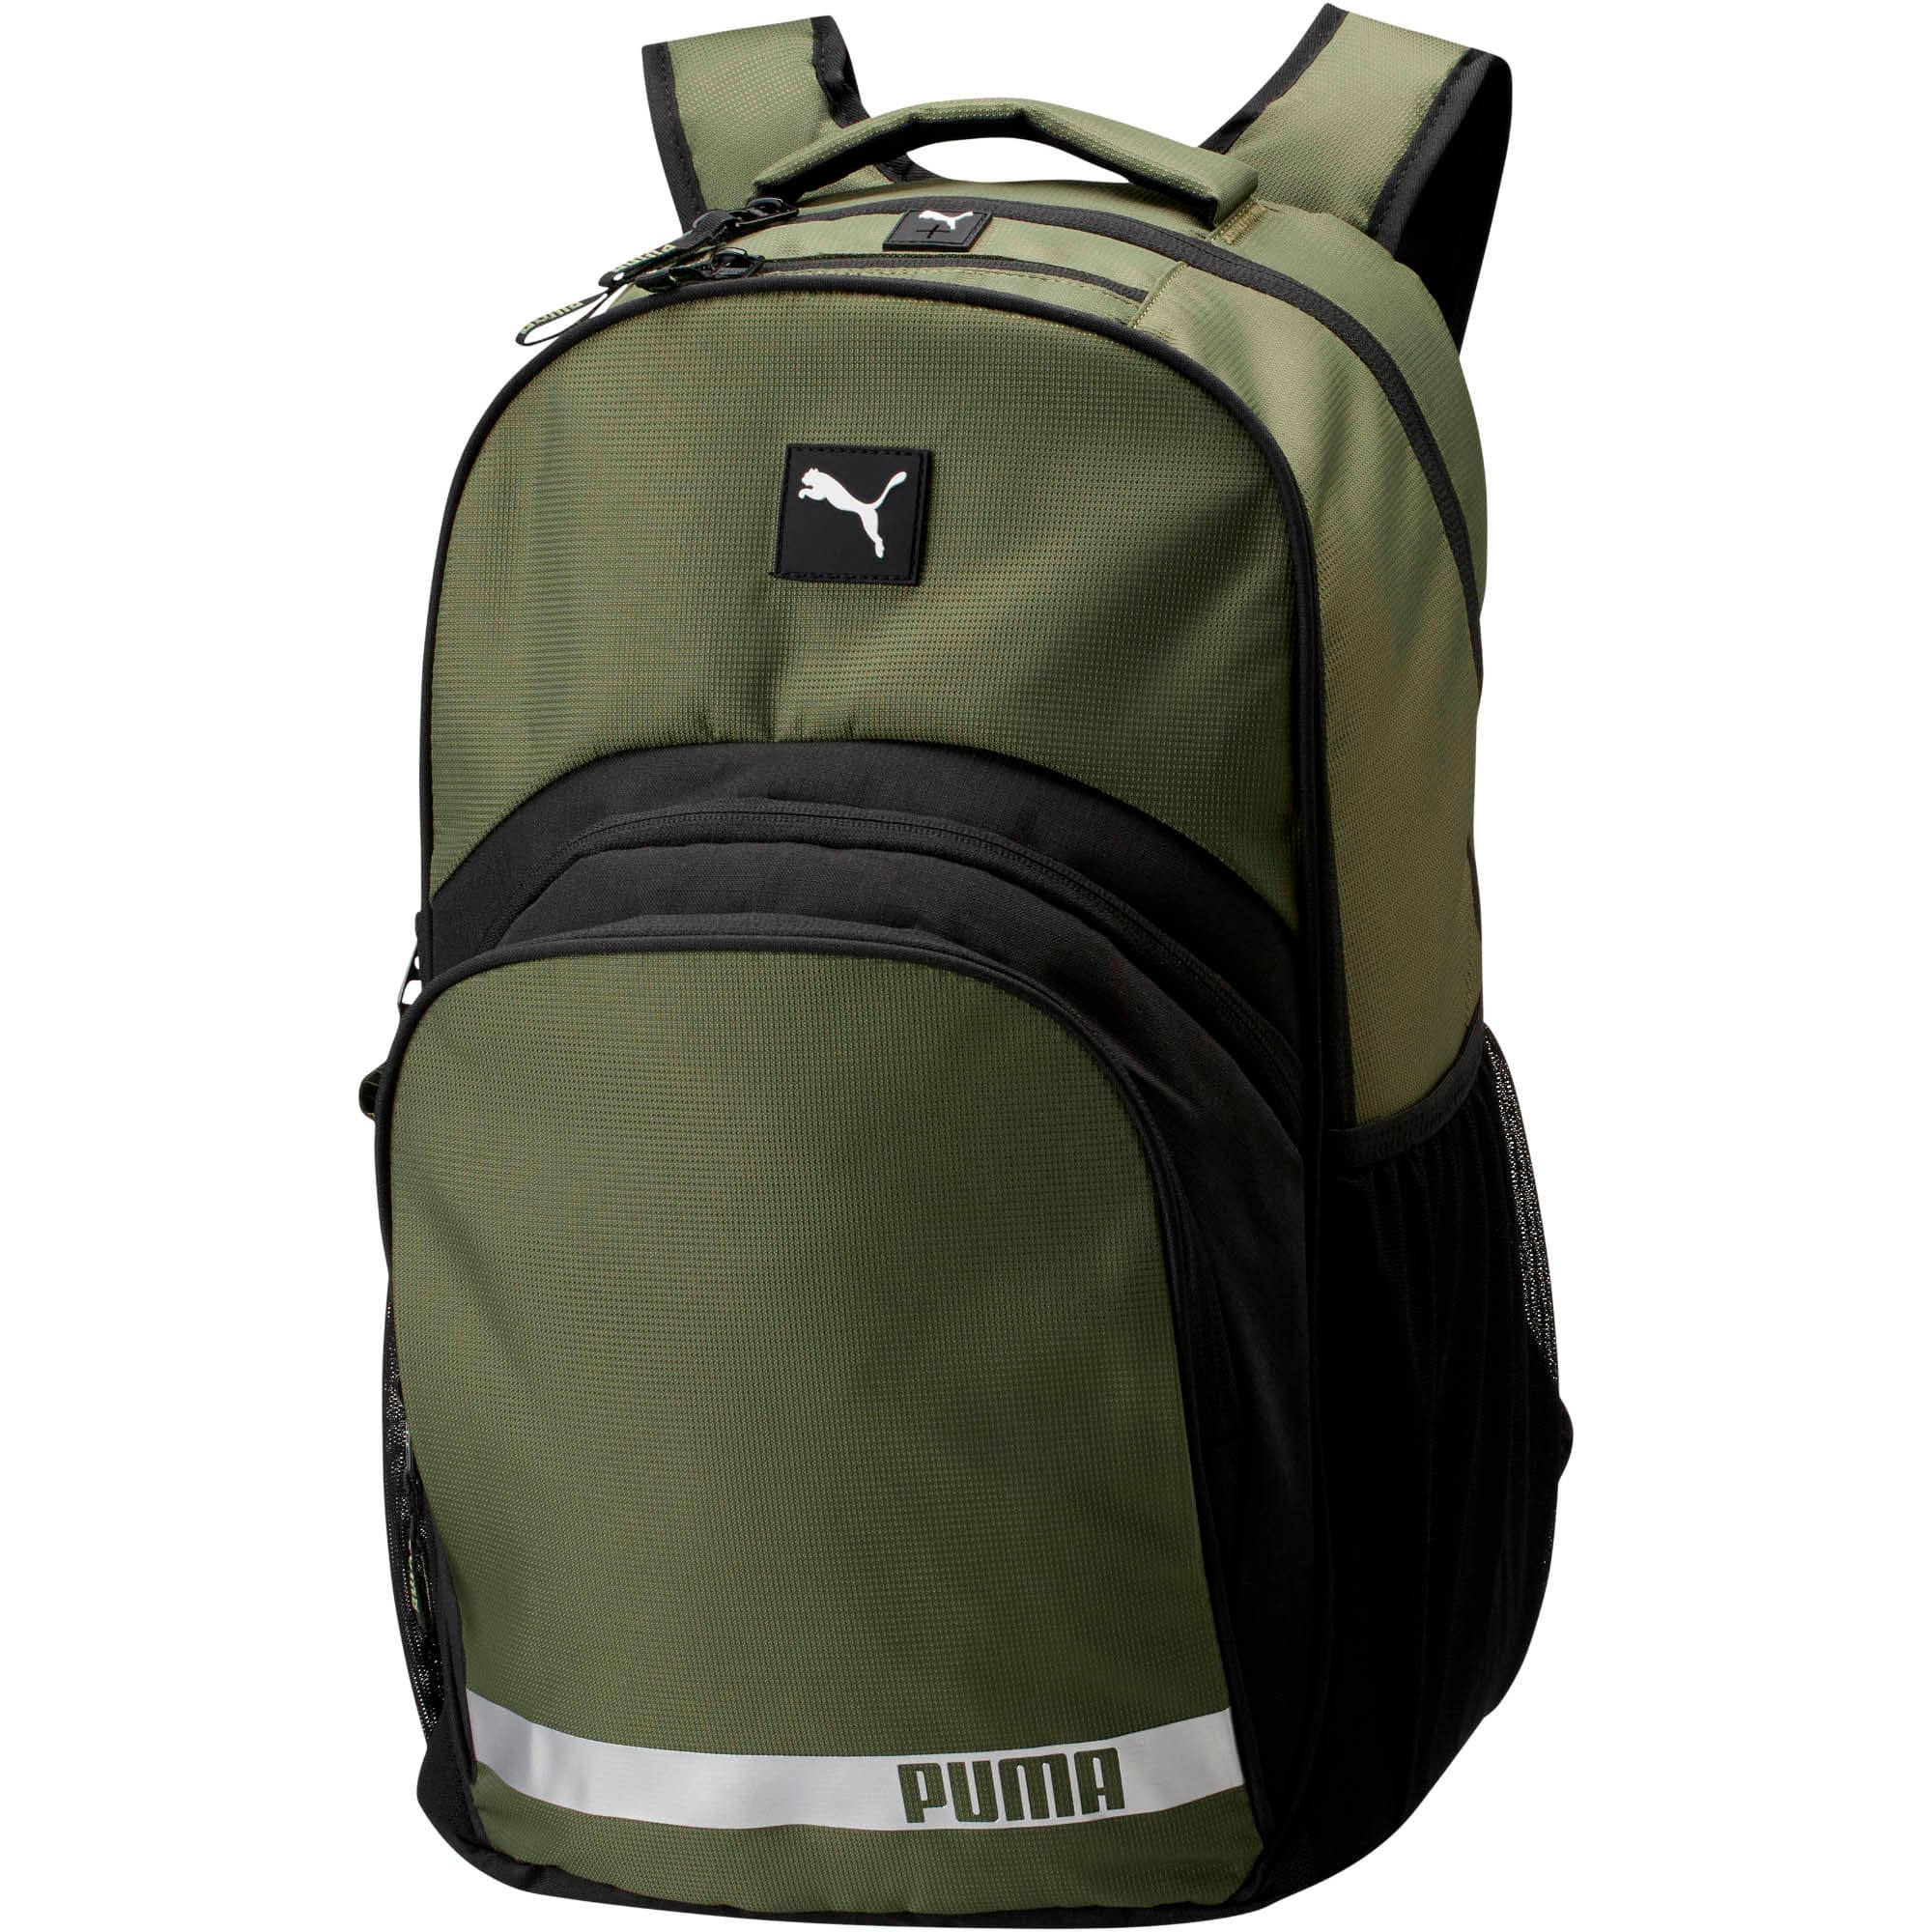 Thumbnail 1 of Formation 2.0 Ball Backpack, Olive, medium